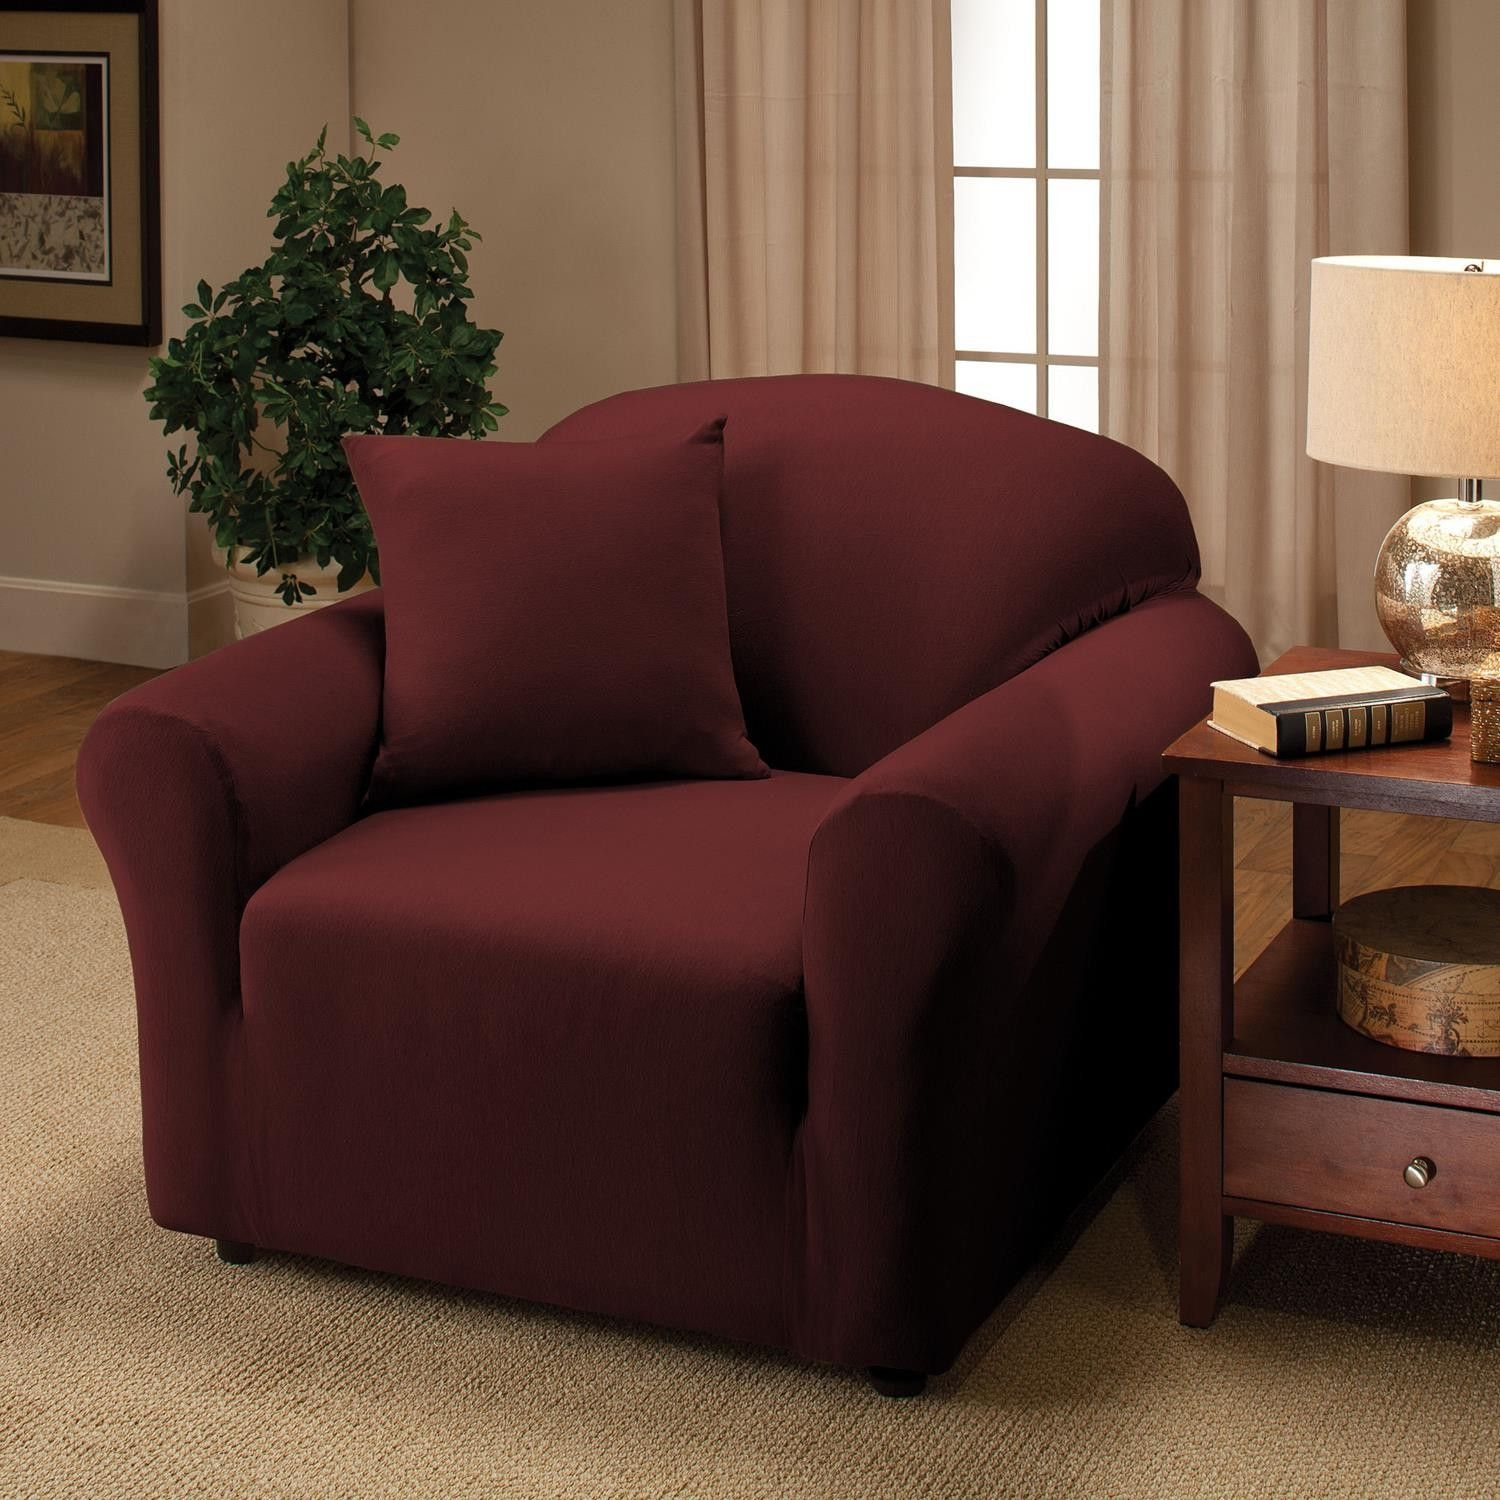 Good Black Jersey Loveseat Stretch Slipcover, Sofa, Chair, Recliner, Couch Cover  Love Seat